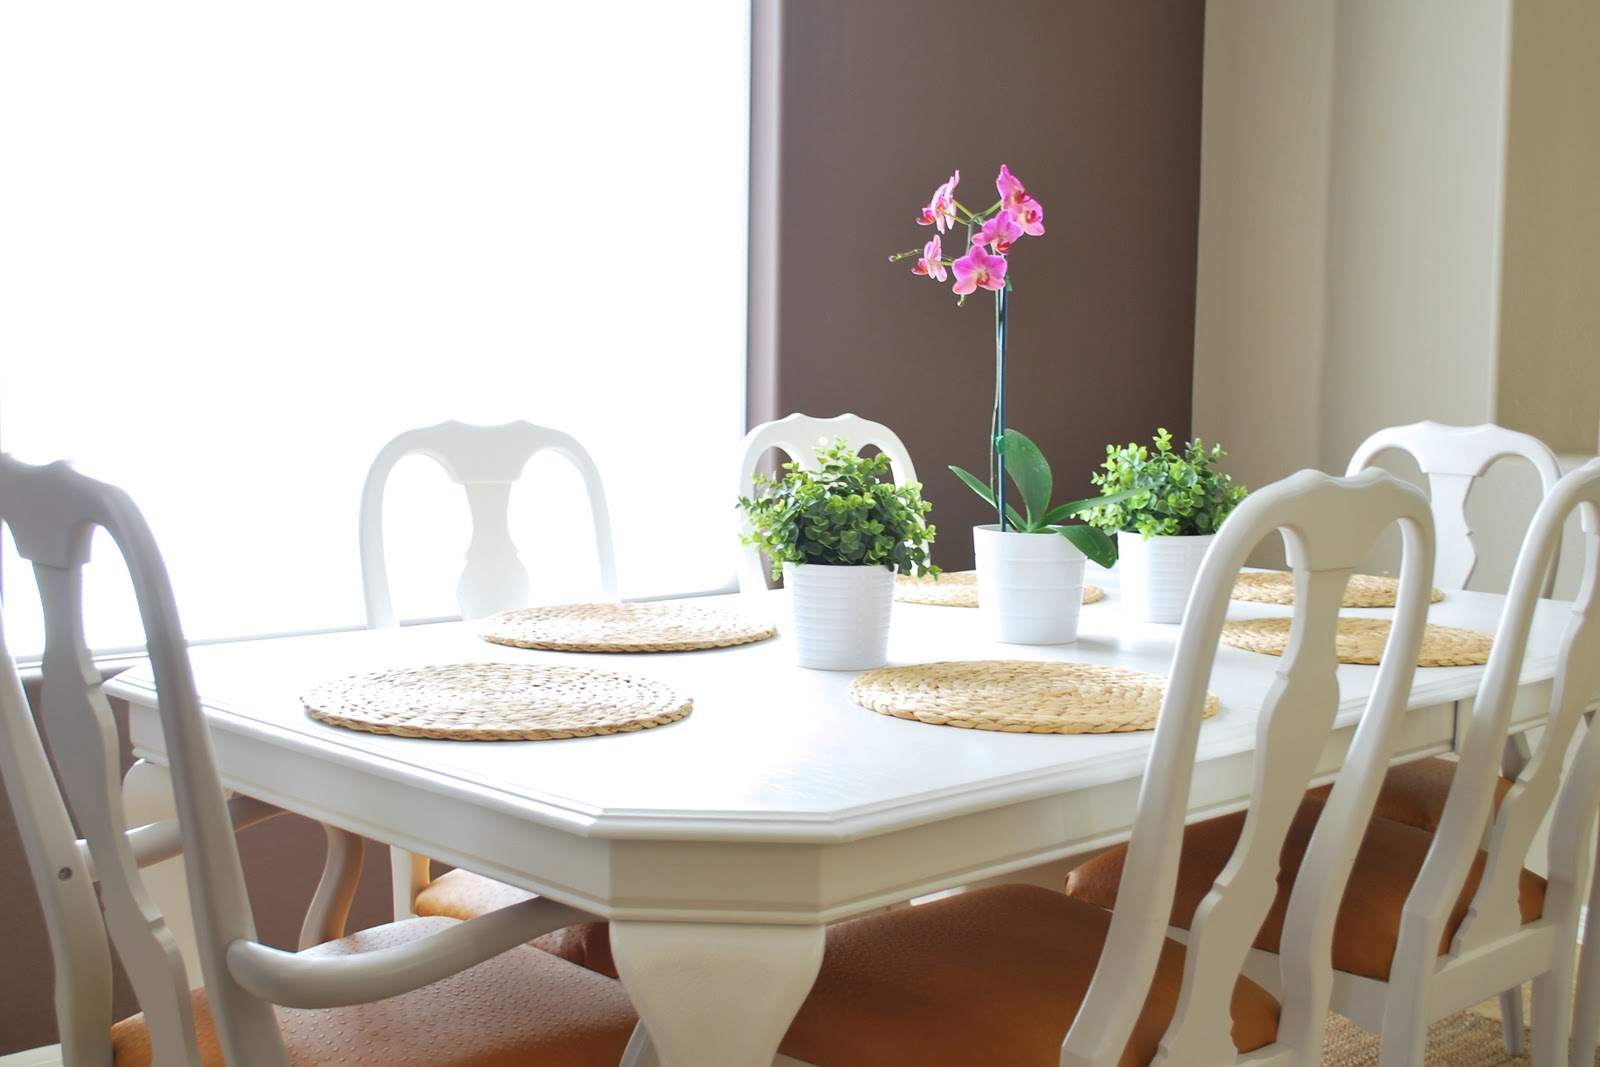 Remodelaholic | Refinished Dining Room Table and Chair Re ...